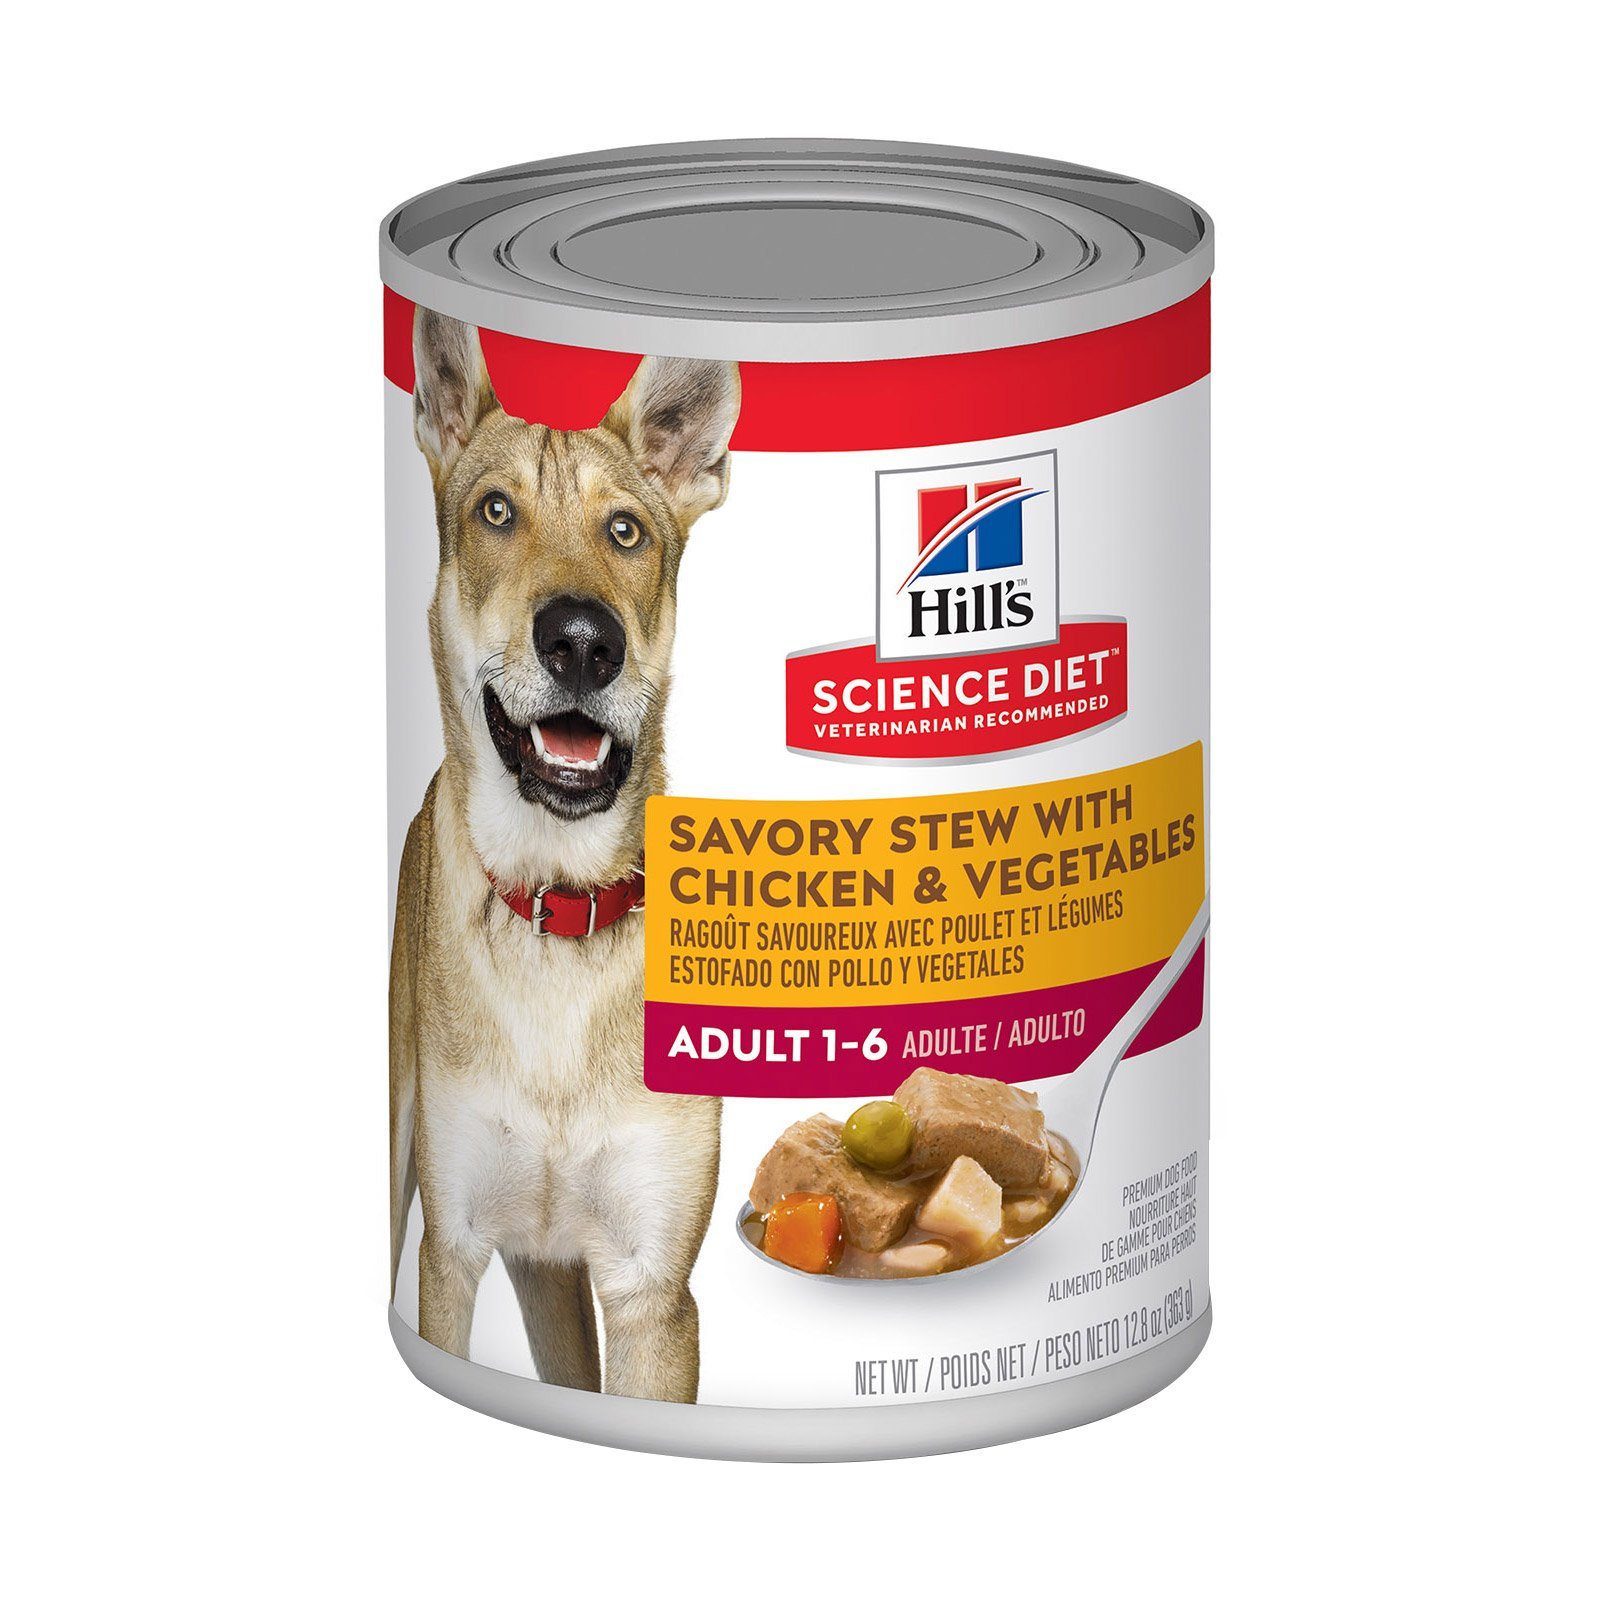 Hill's Science Diet Adult Savory Stew Chicken & Vegetable Canned Dog Food 363 Gm